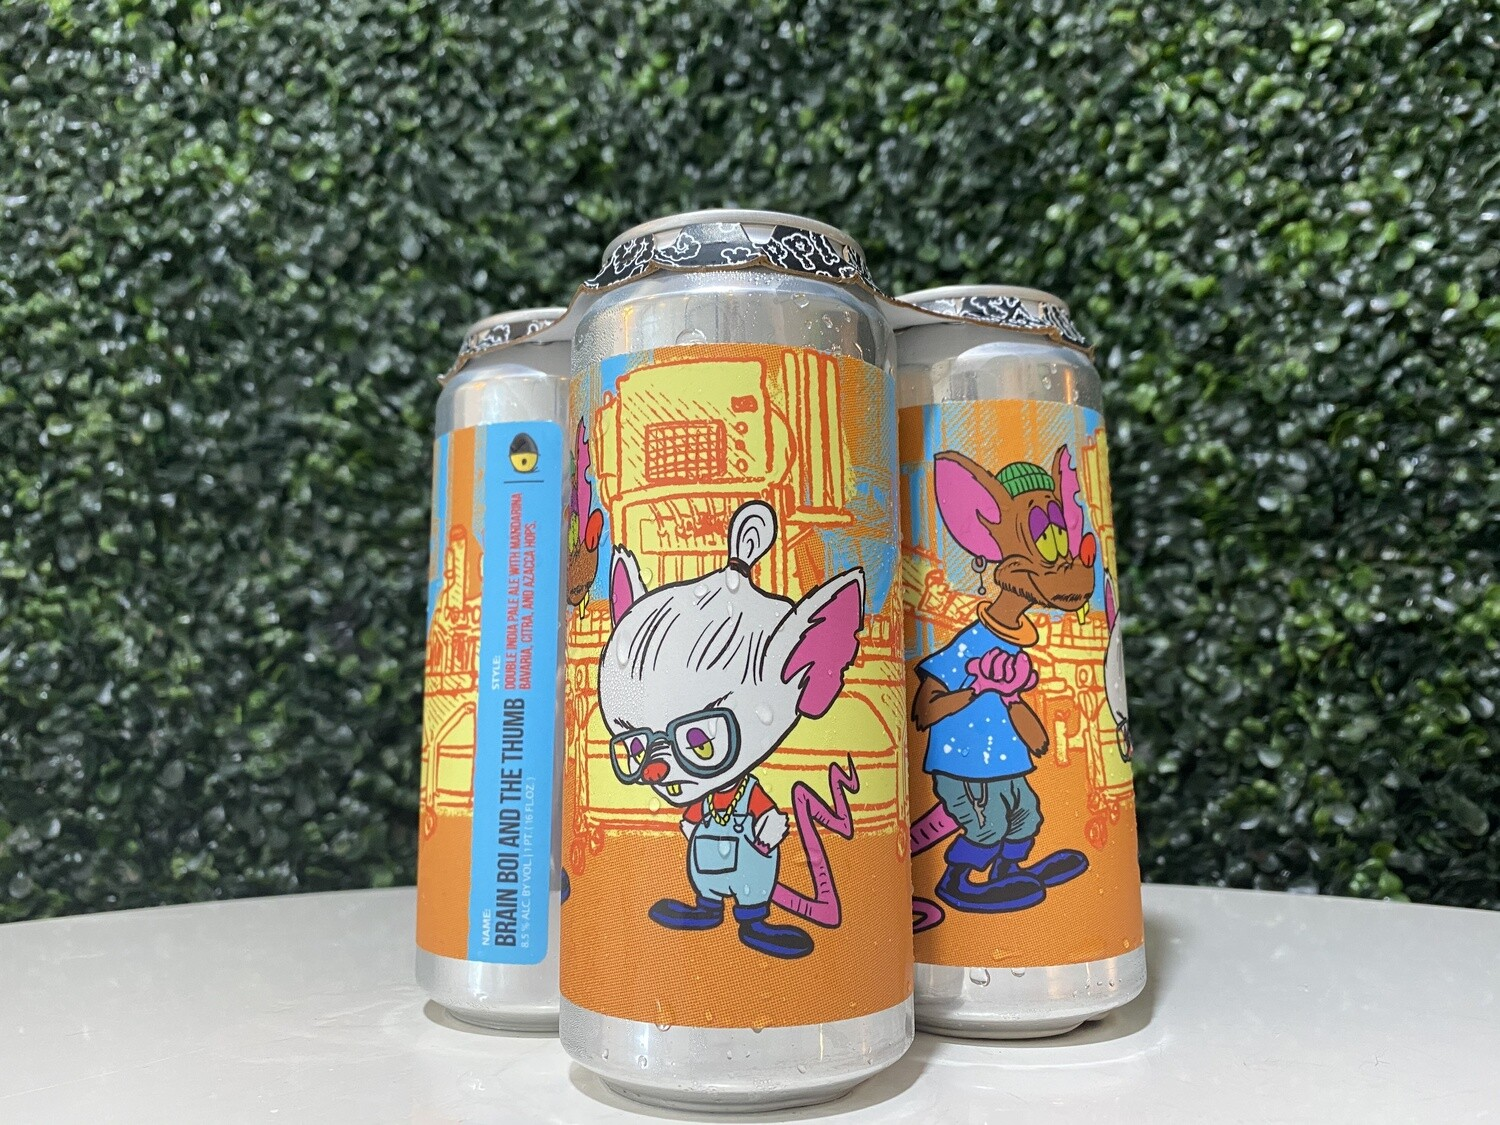 Tripping Animals - Brain Boi And the Thumb - DIPA - 8.5% ABV - 4 Pack